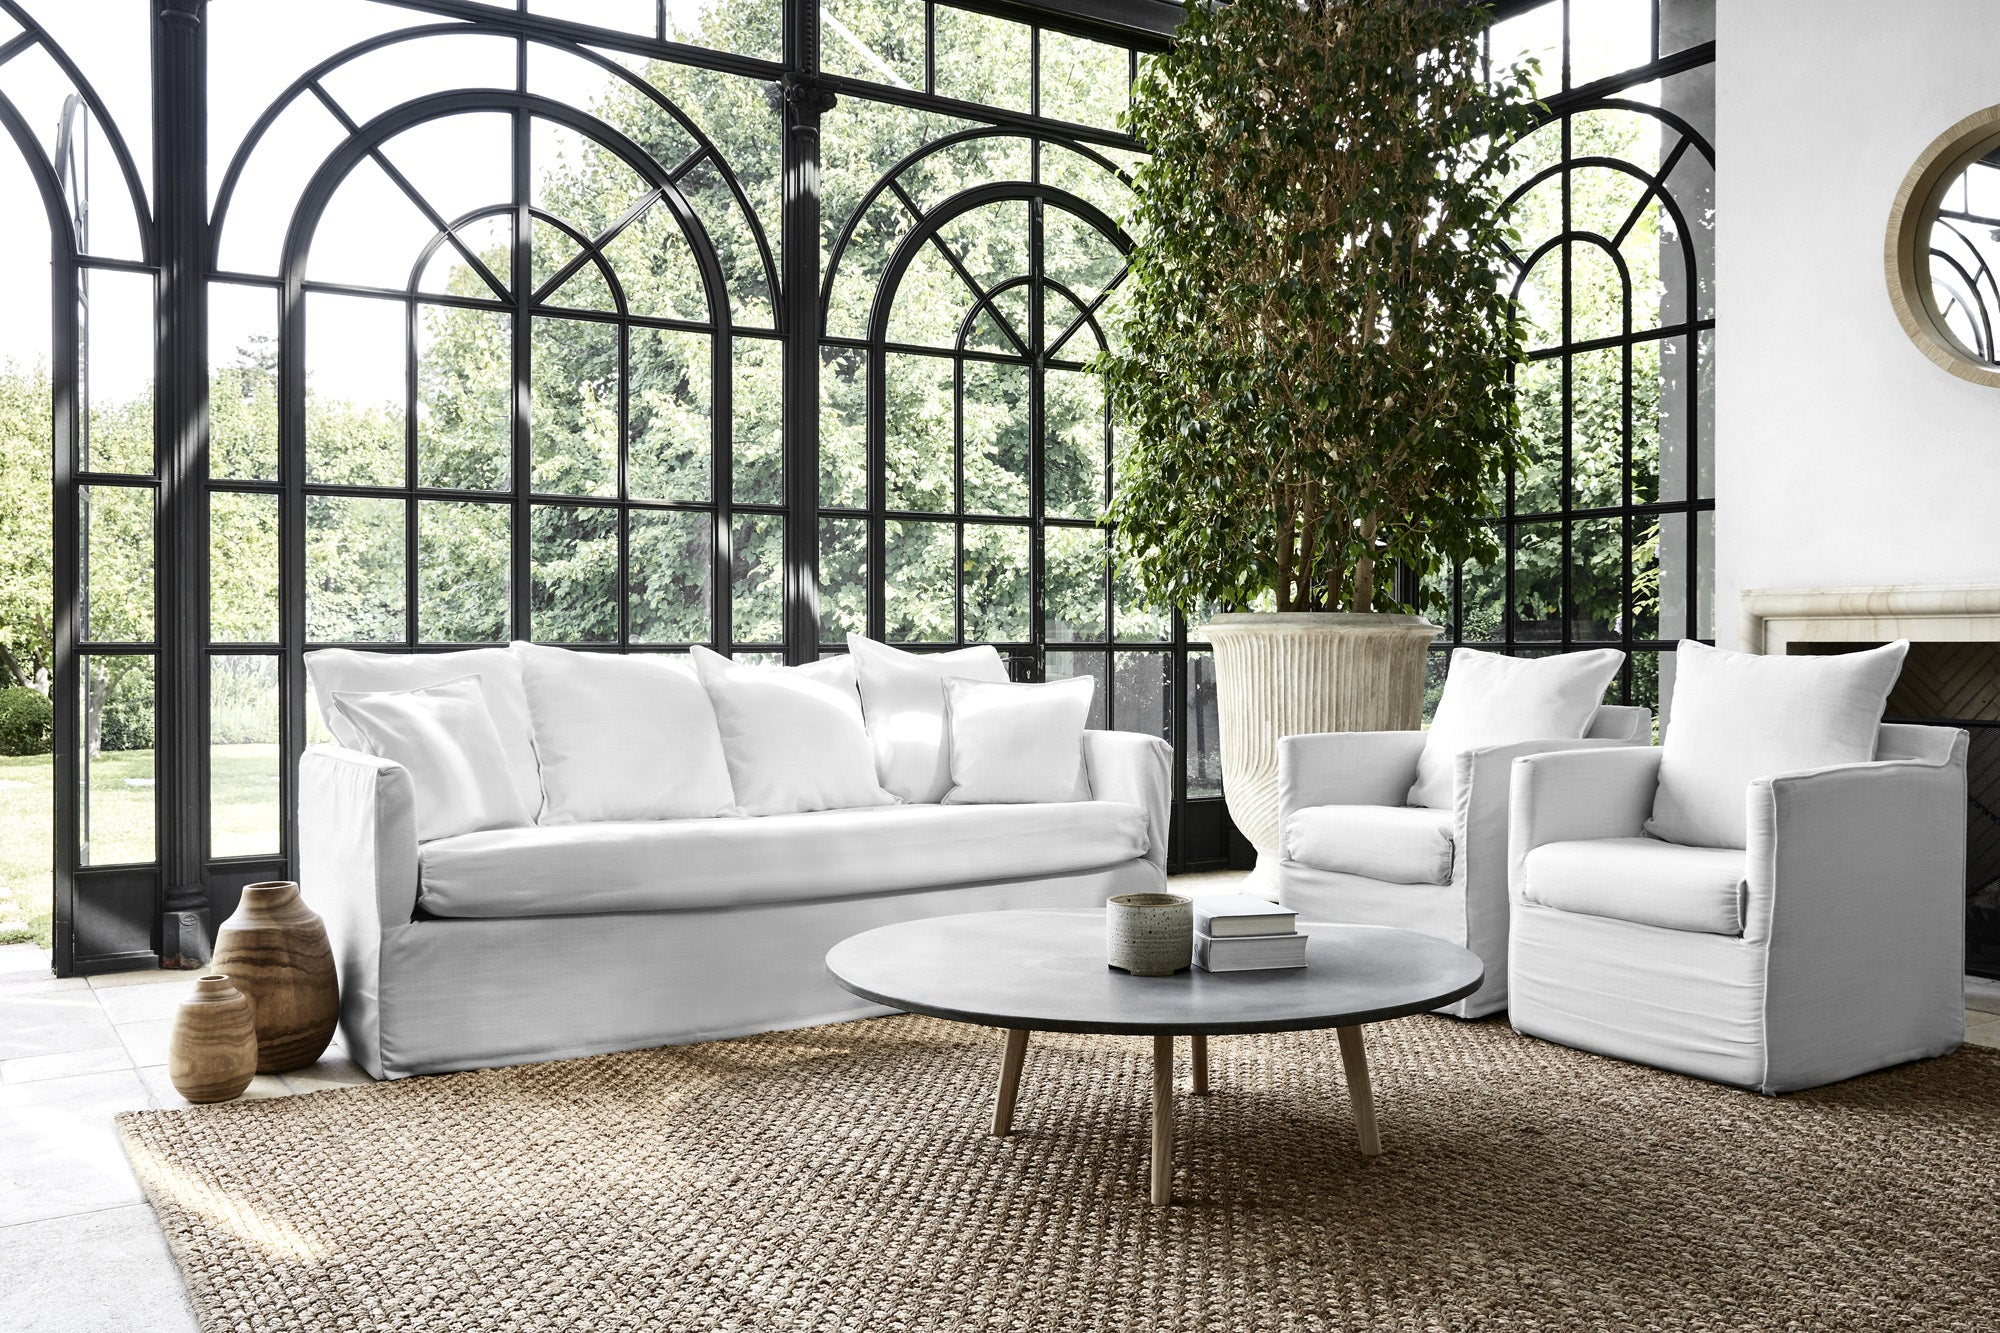 Slip Wash Sofa Set - Available in Different Sizes For Any Living Room